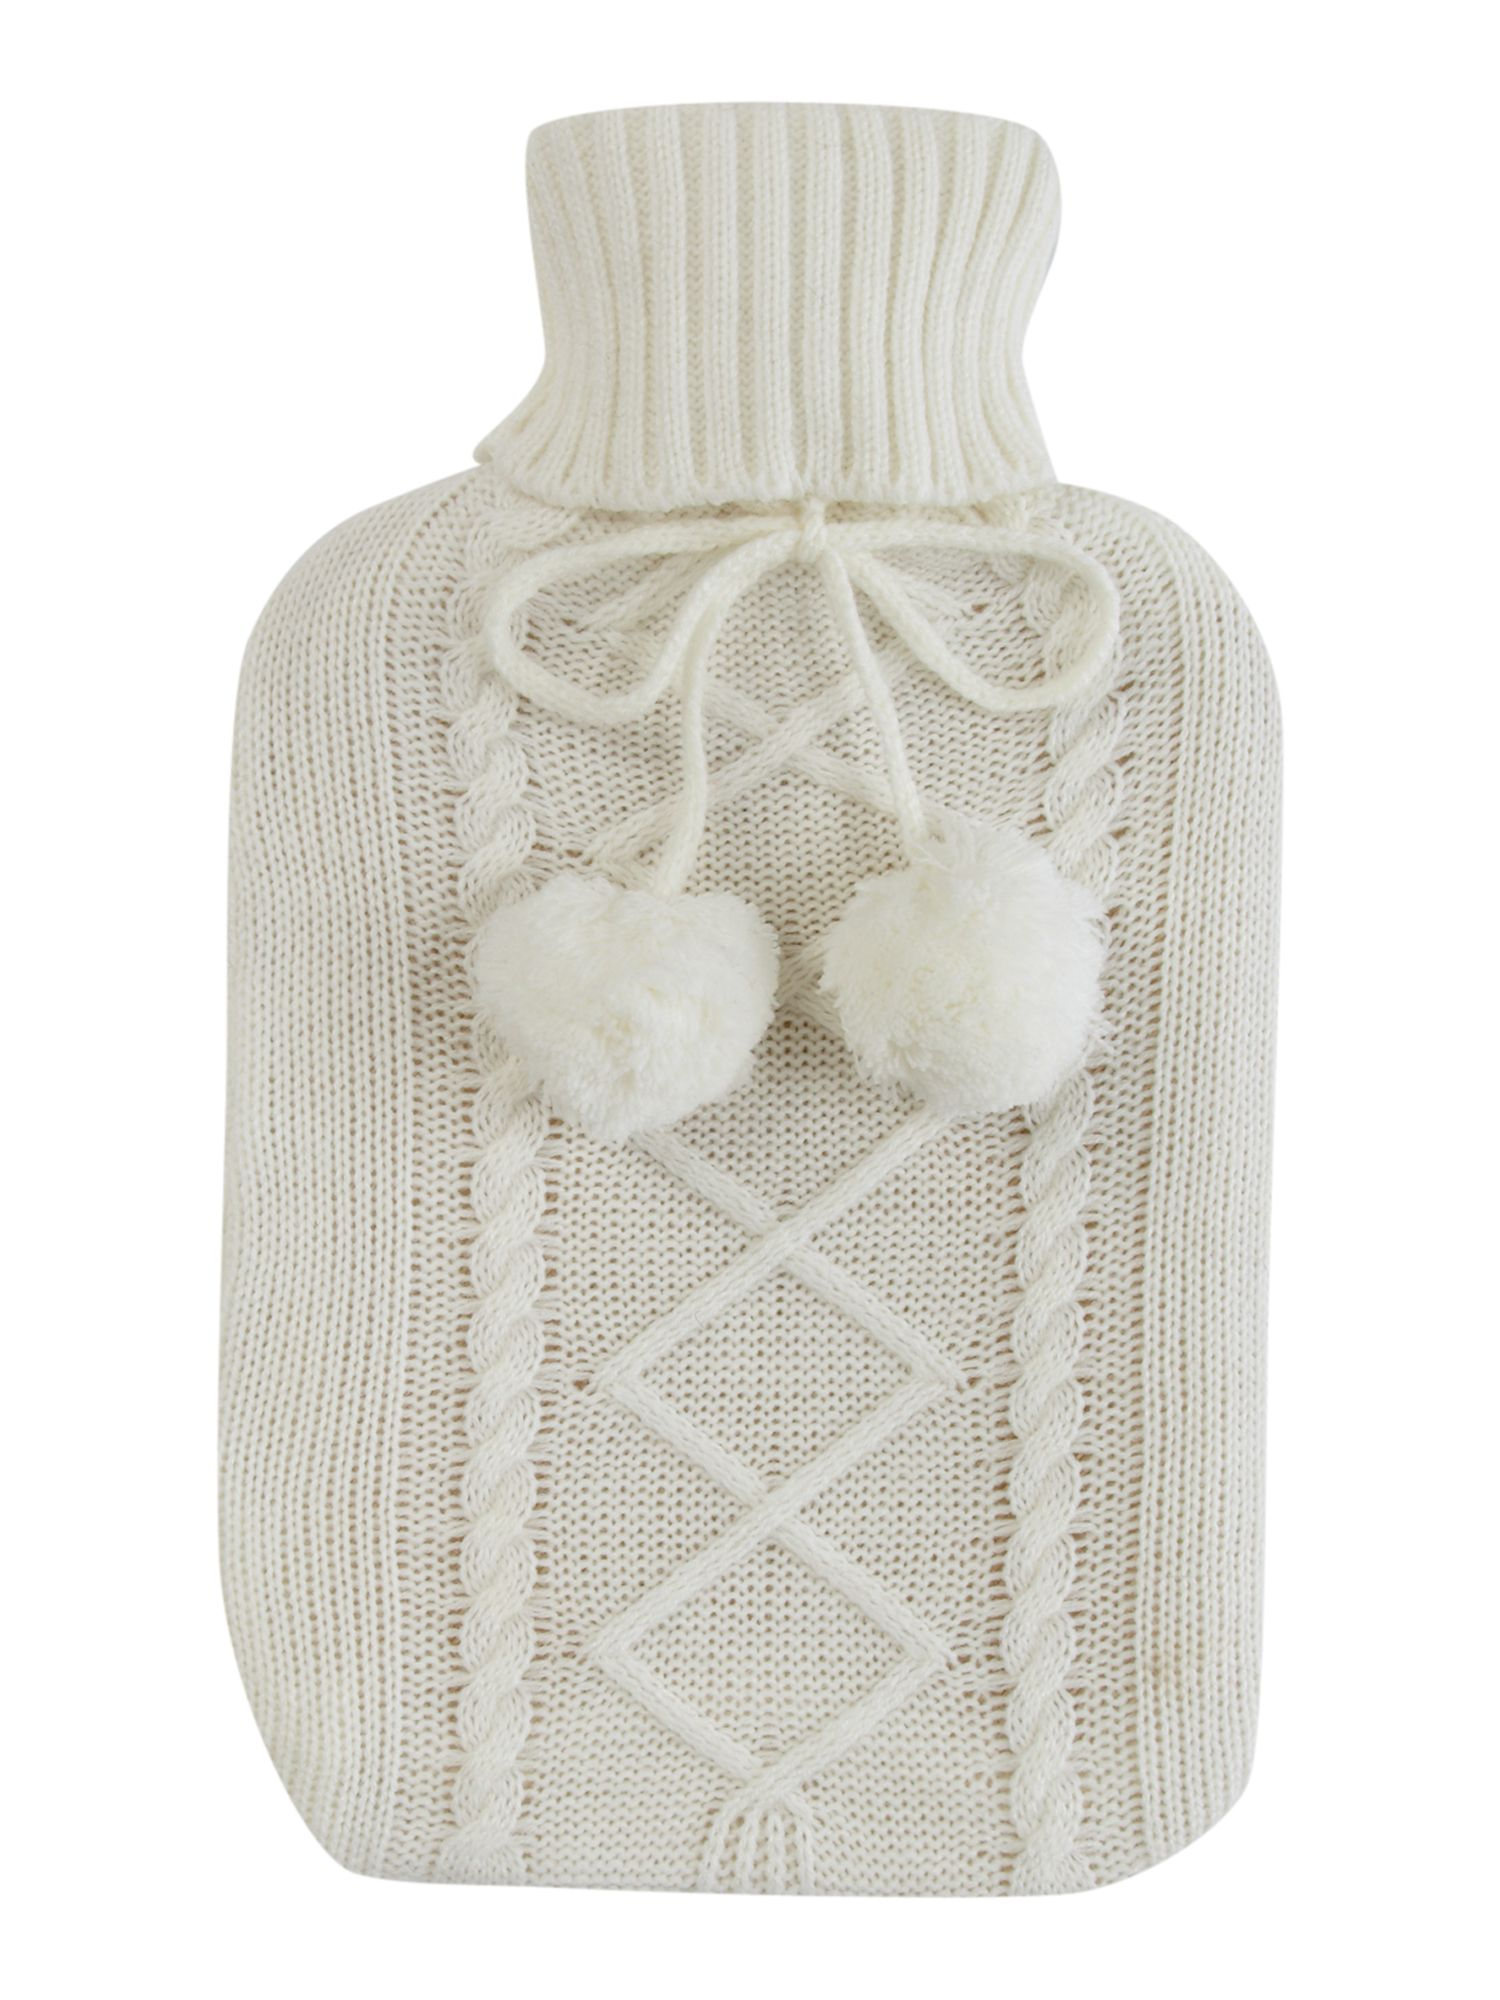 White knitted hot water bottle